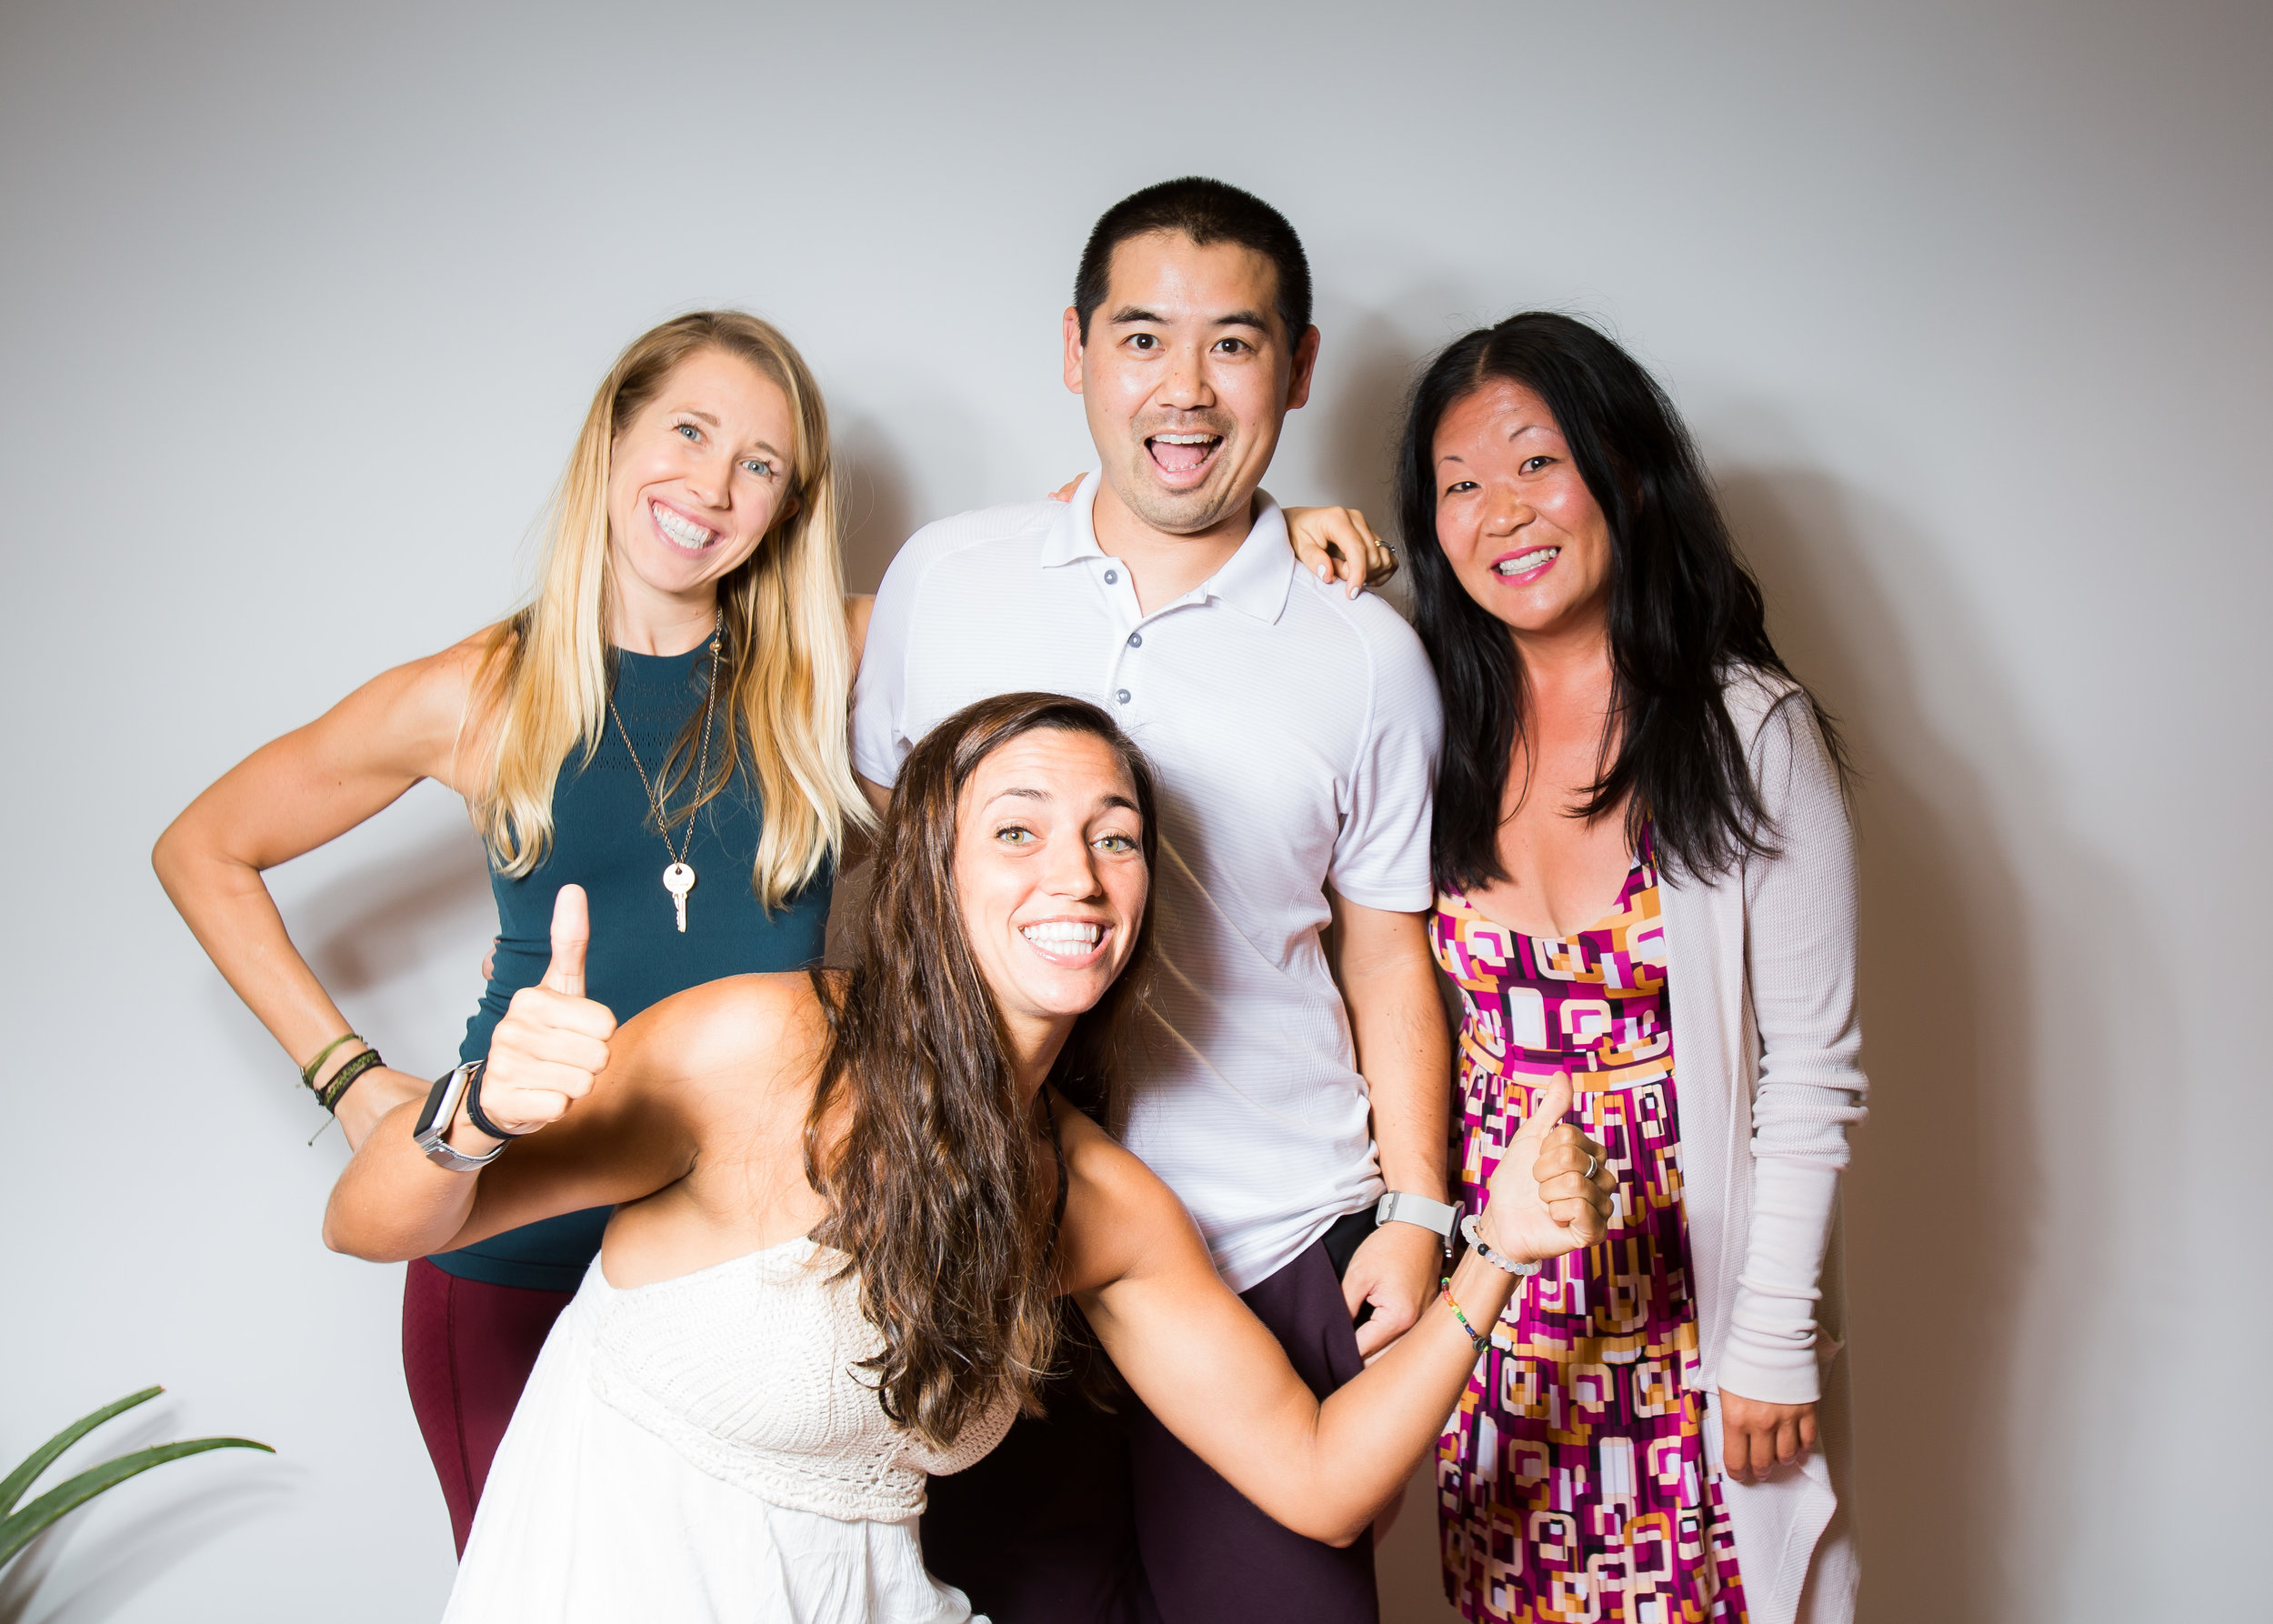 San Diego DJ, Justin Kanoya, with Lululemon ambassadors, (from left) Kat Gunsur-Smith, Katie Burke and Kim Bauman.